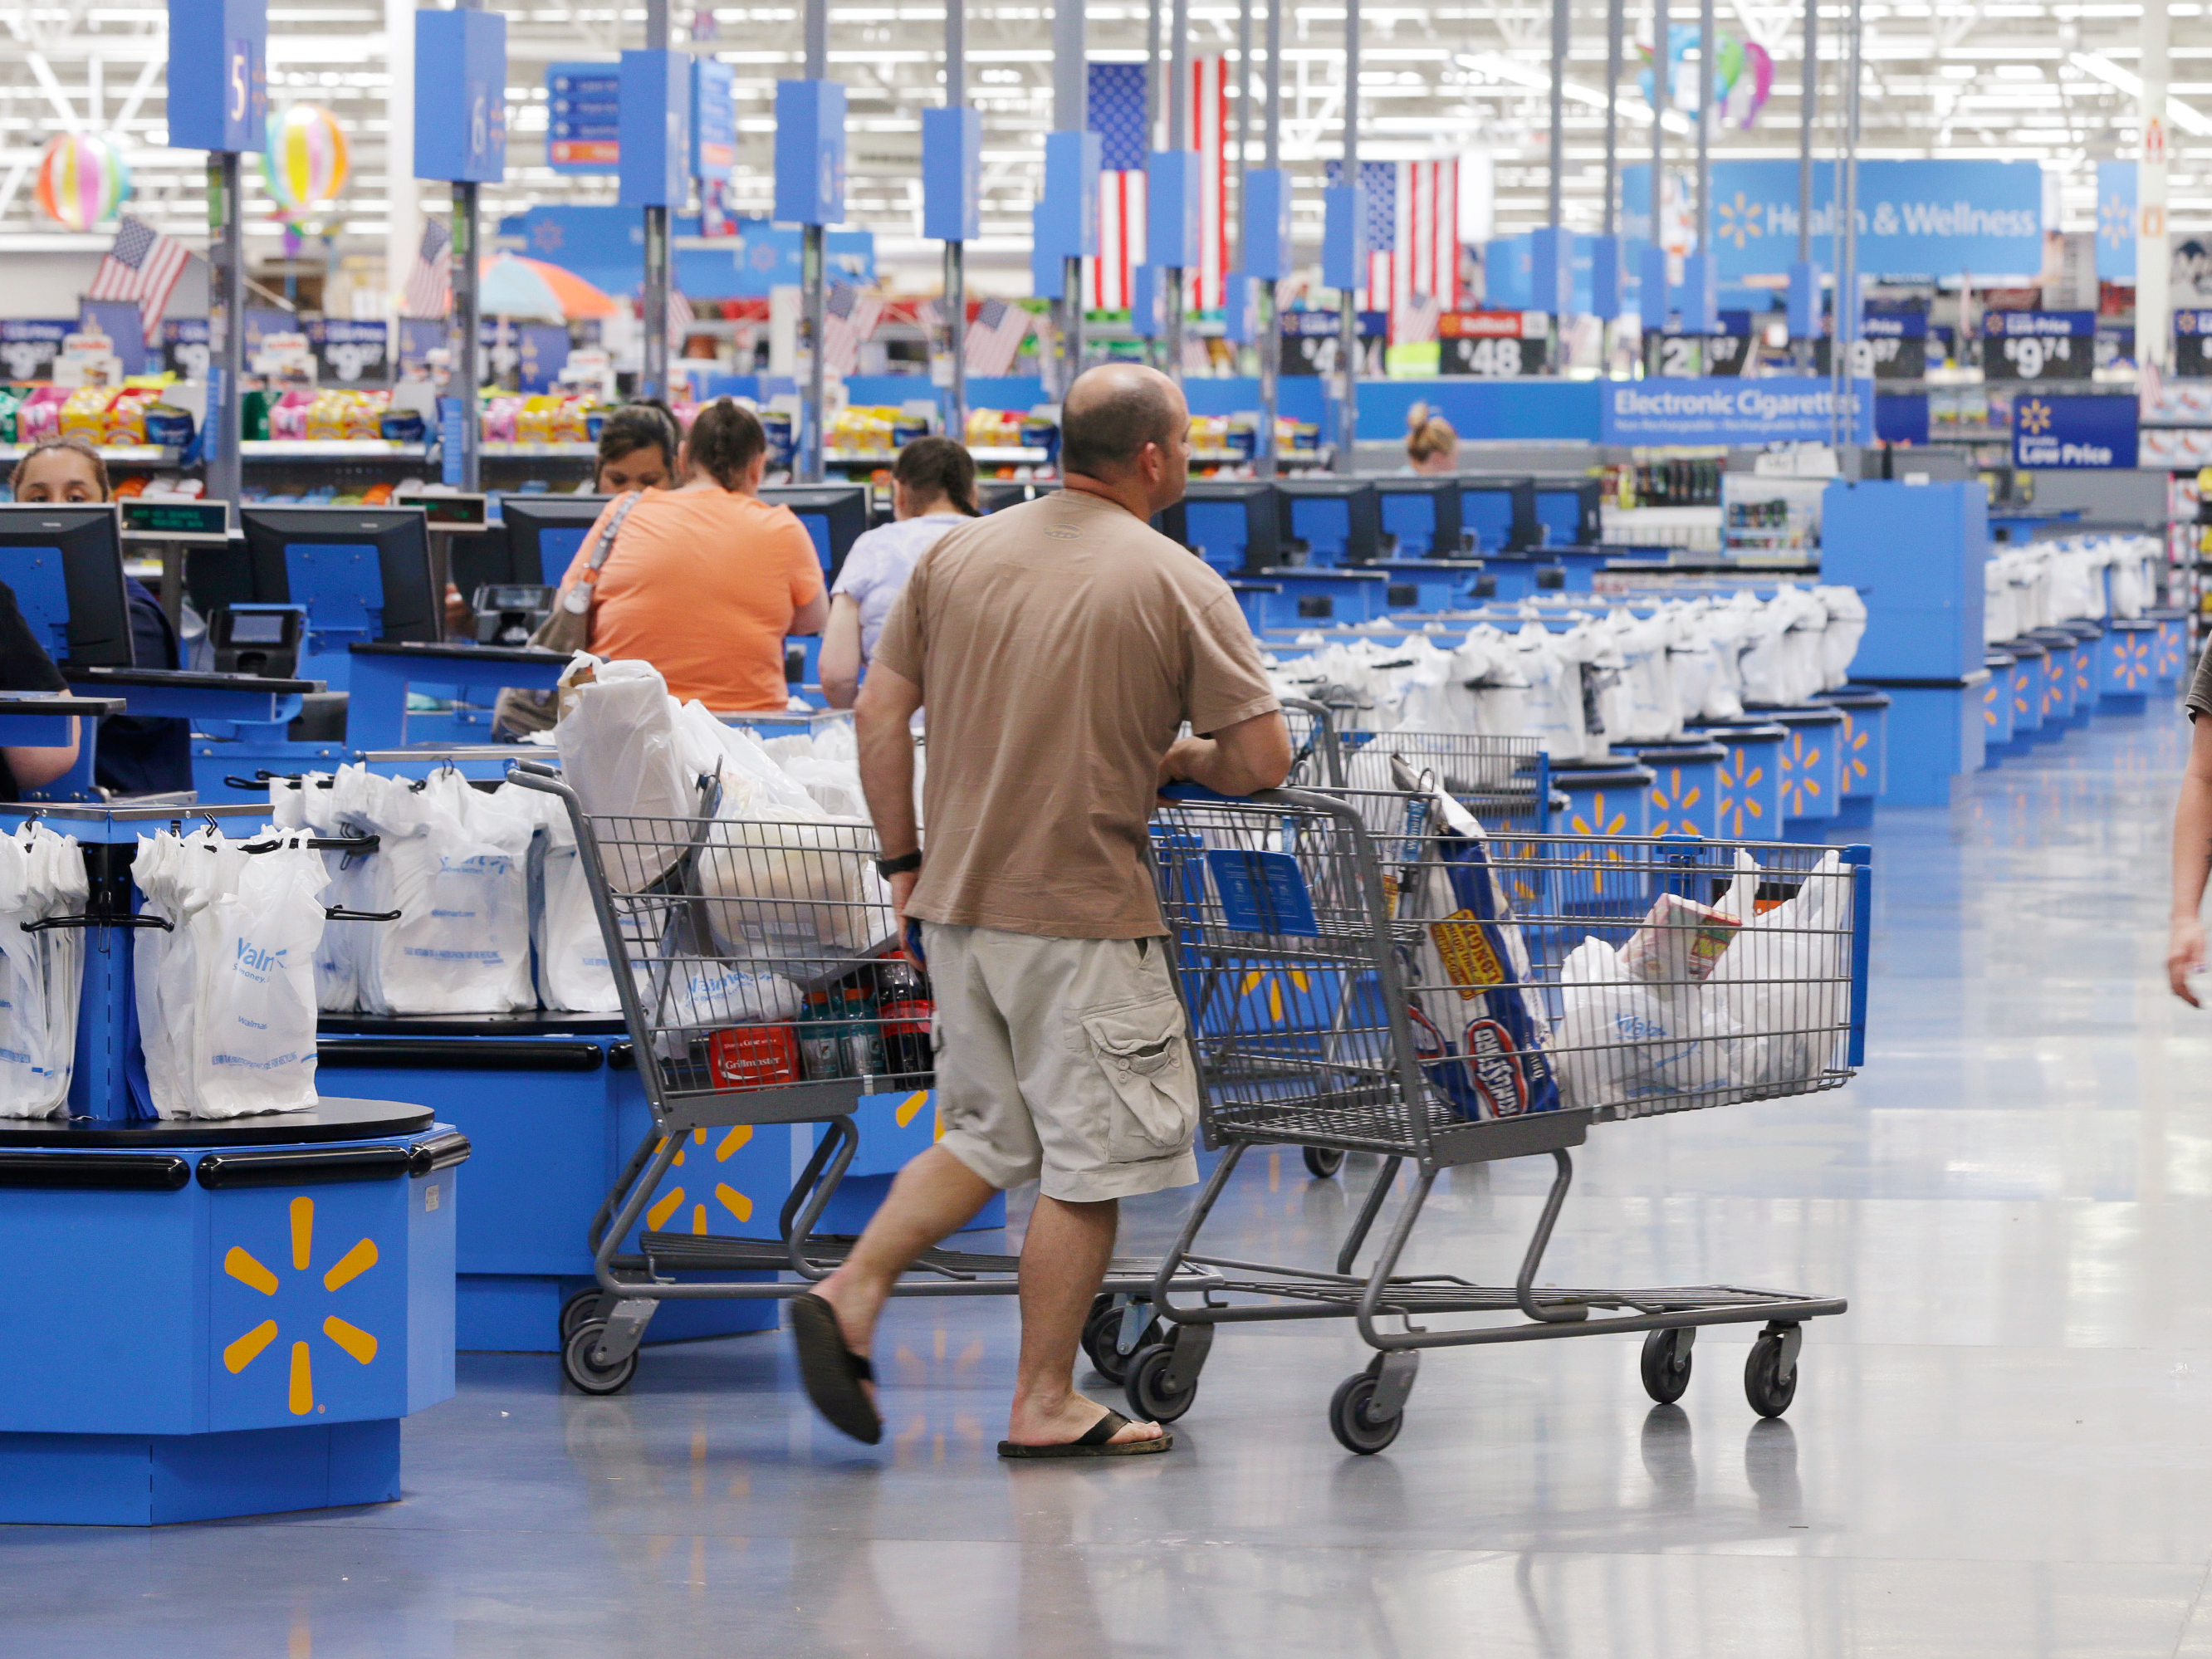 Shoppers walks from the checkout at a Walmart Supercenter store in Springdale, Ark., Thursday, June 4, 2015.